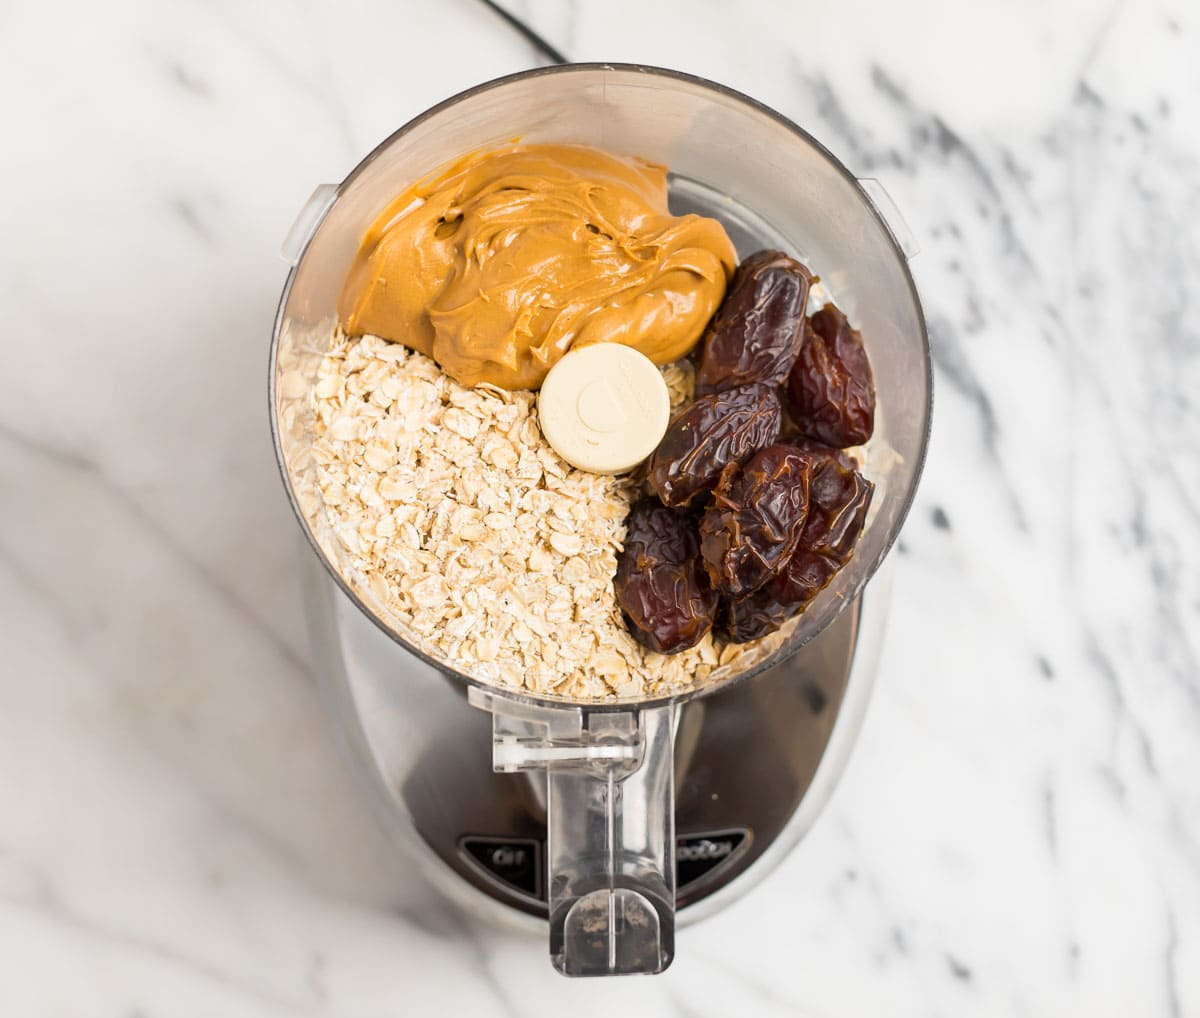 a food processor with dates, peanut butter, and oats